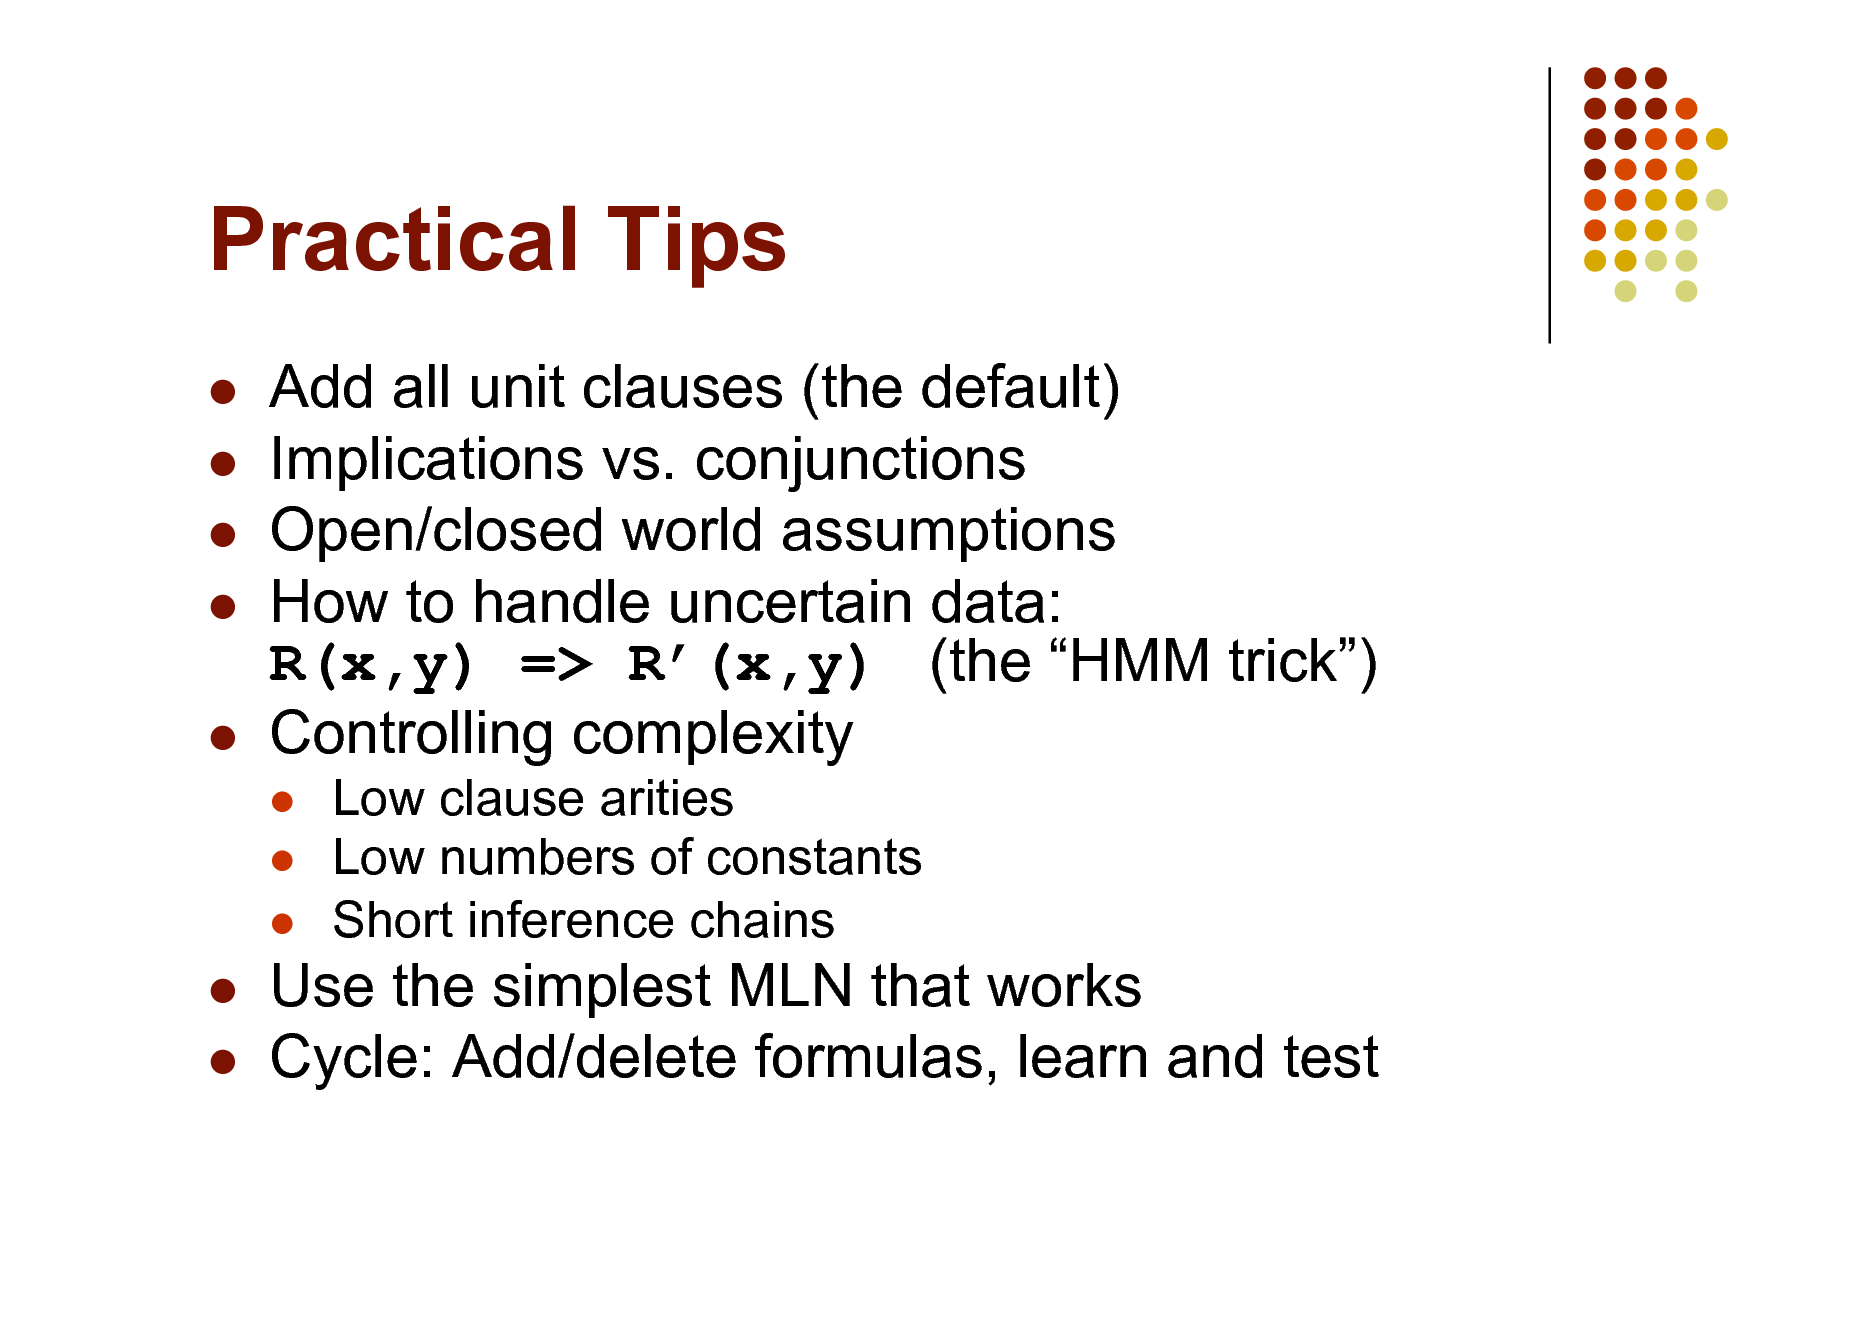 Slide: Practical Tips       Add all unit clauses (the default) Implications vs. conjunctions Open/closed world assumptions How to handle uncertain data: R(x,y) => R(x,y) (the HMM trick) Controlling complexity     Low clause arities Low numbers of constants Short inference chains     Use the simplest MLN that works Cycle: Add/delete formulas, learn and test